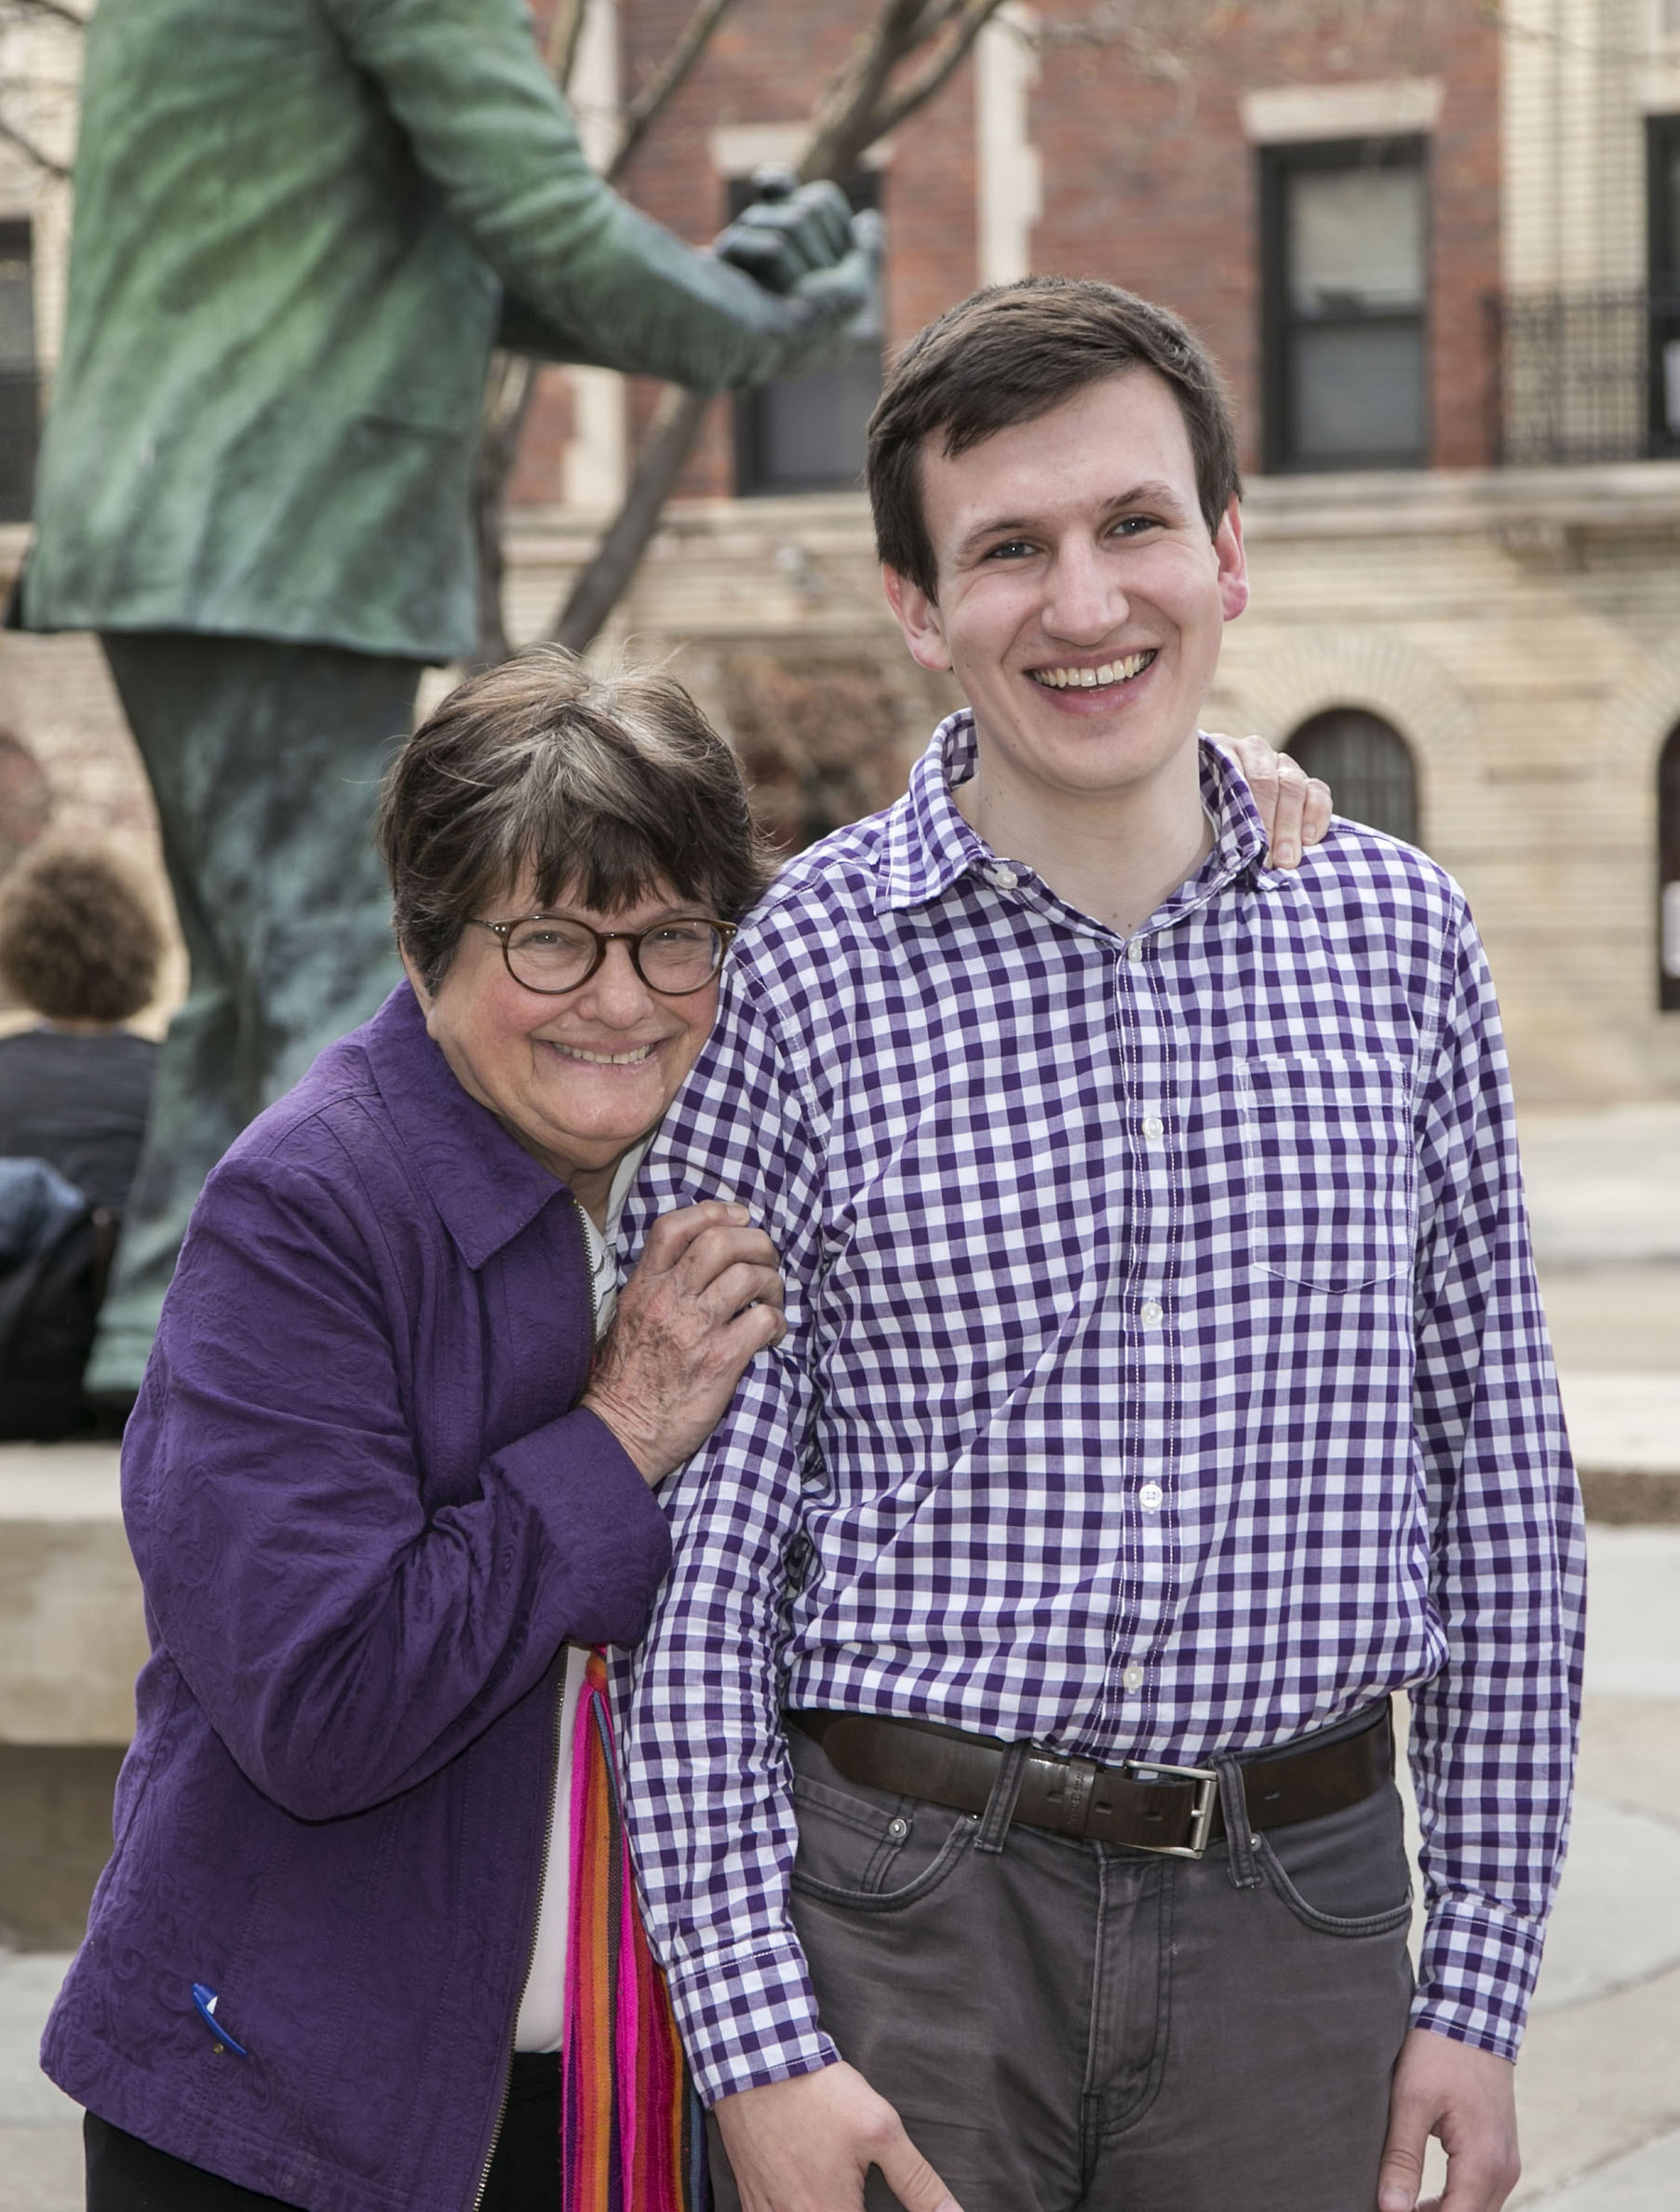 Griffin Hardy and Sr. Helen Prejean